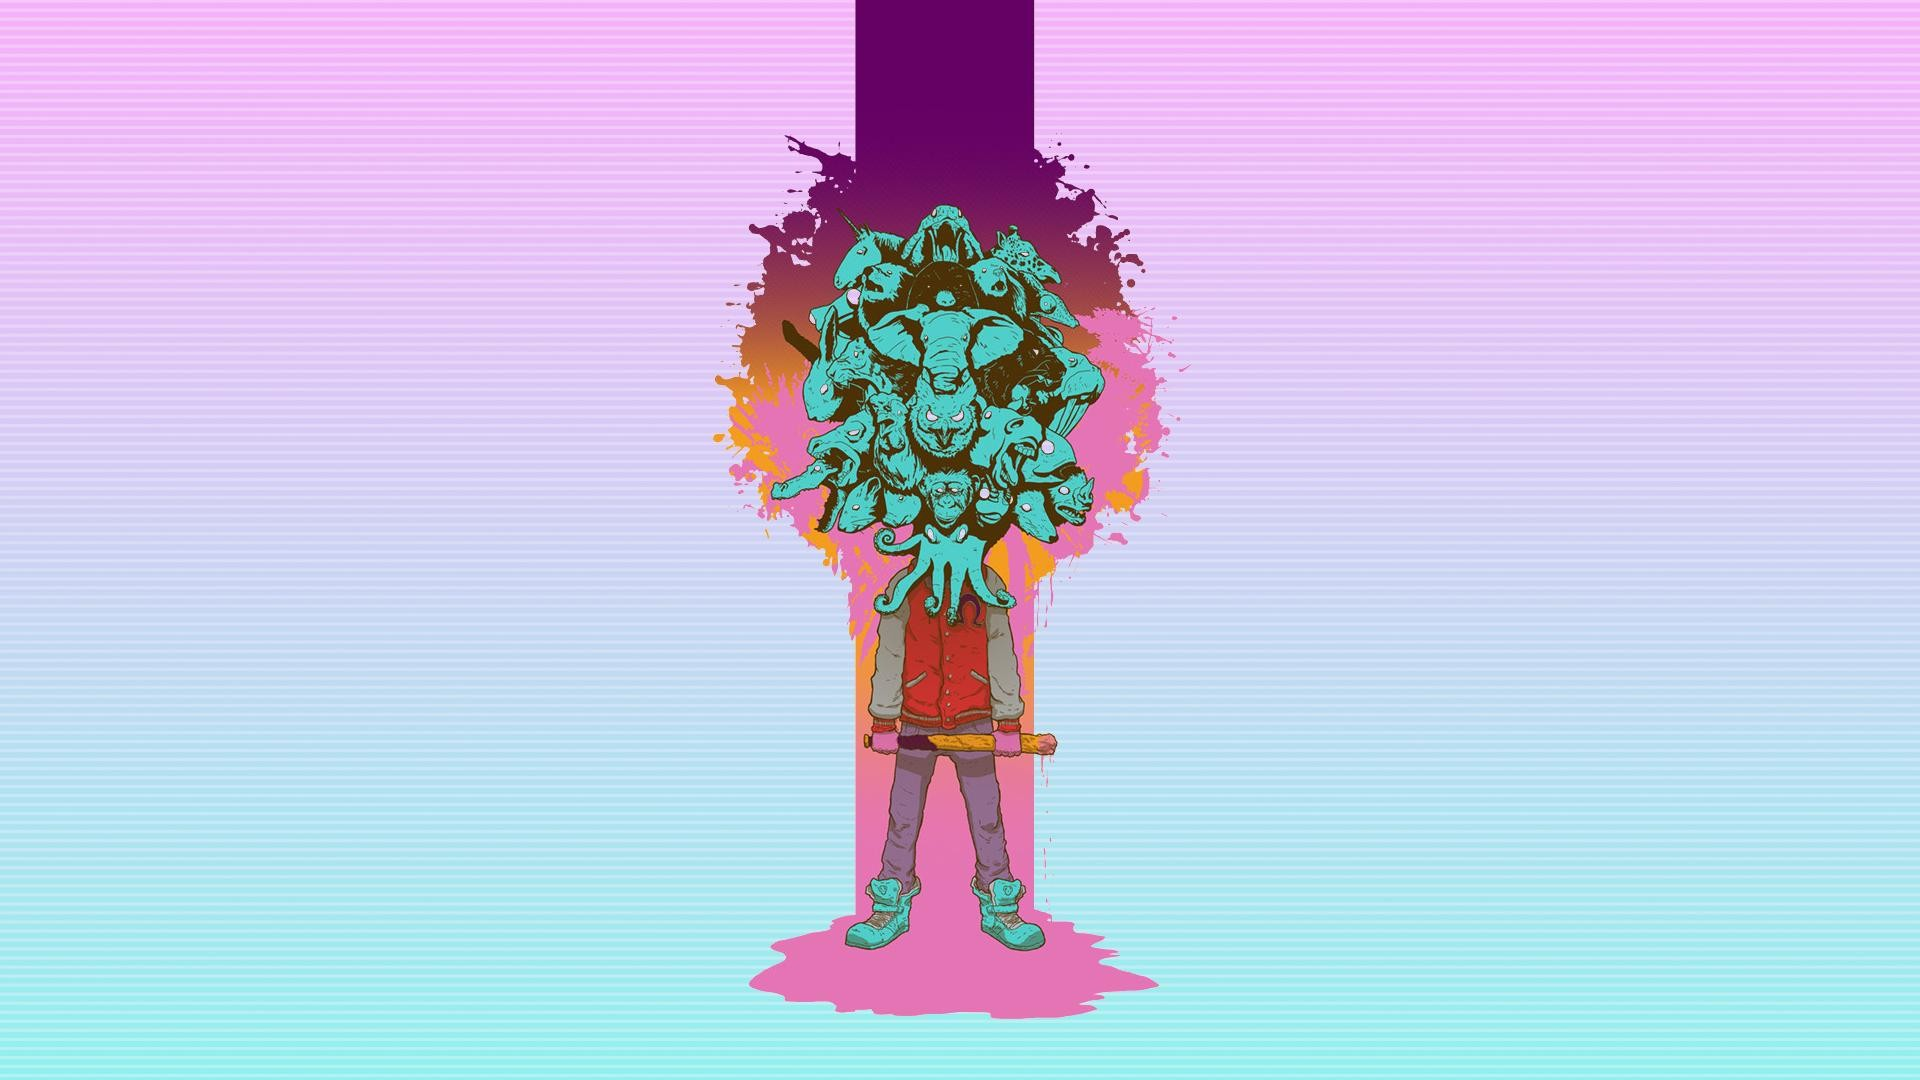 Hotline Miami Iphone Wallpaper 64 Images